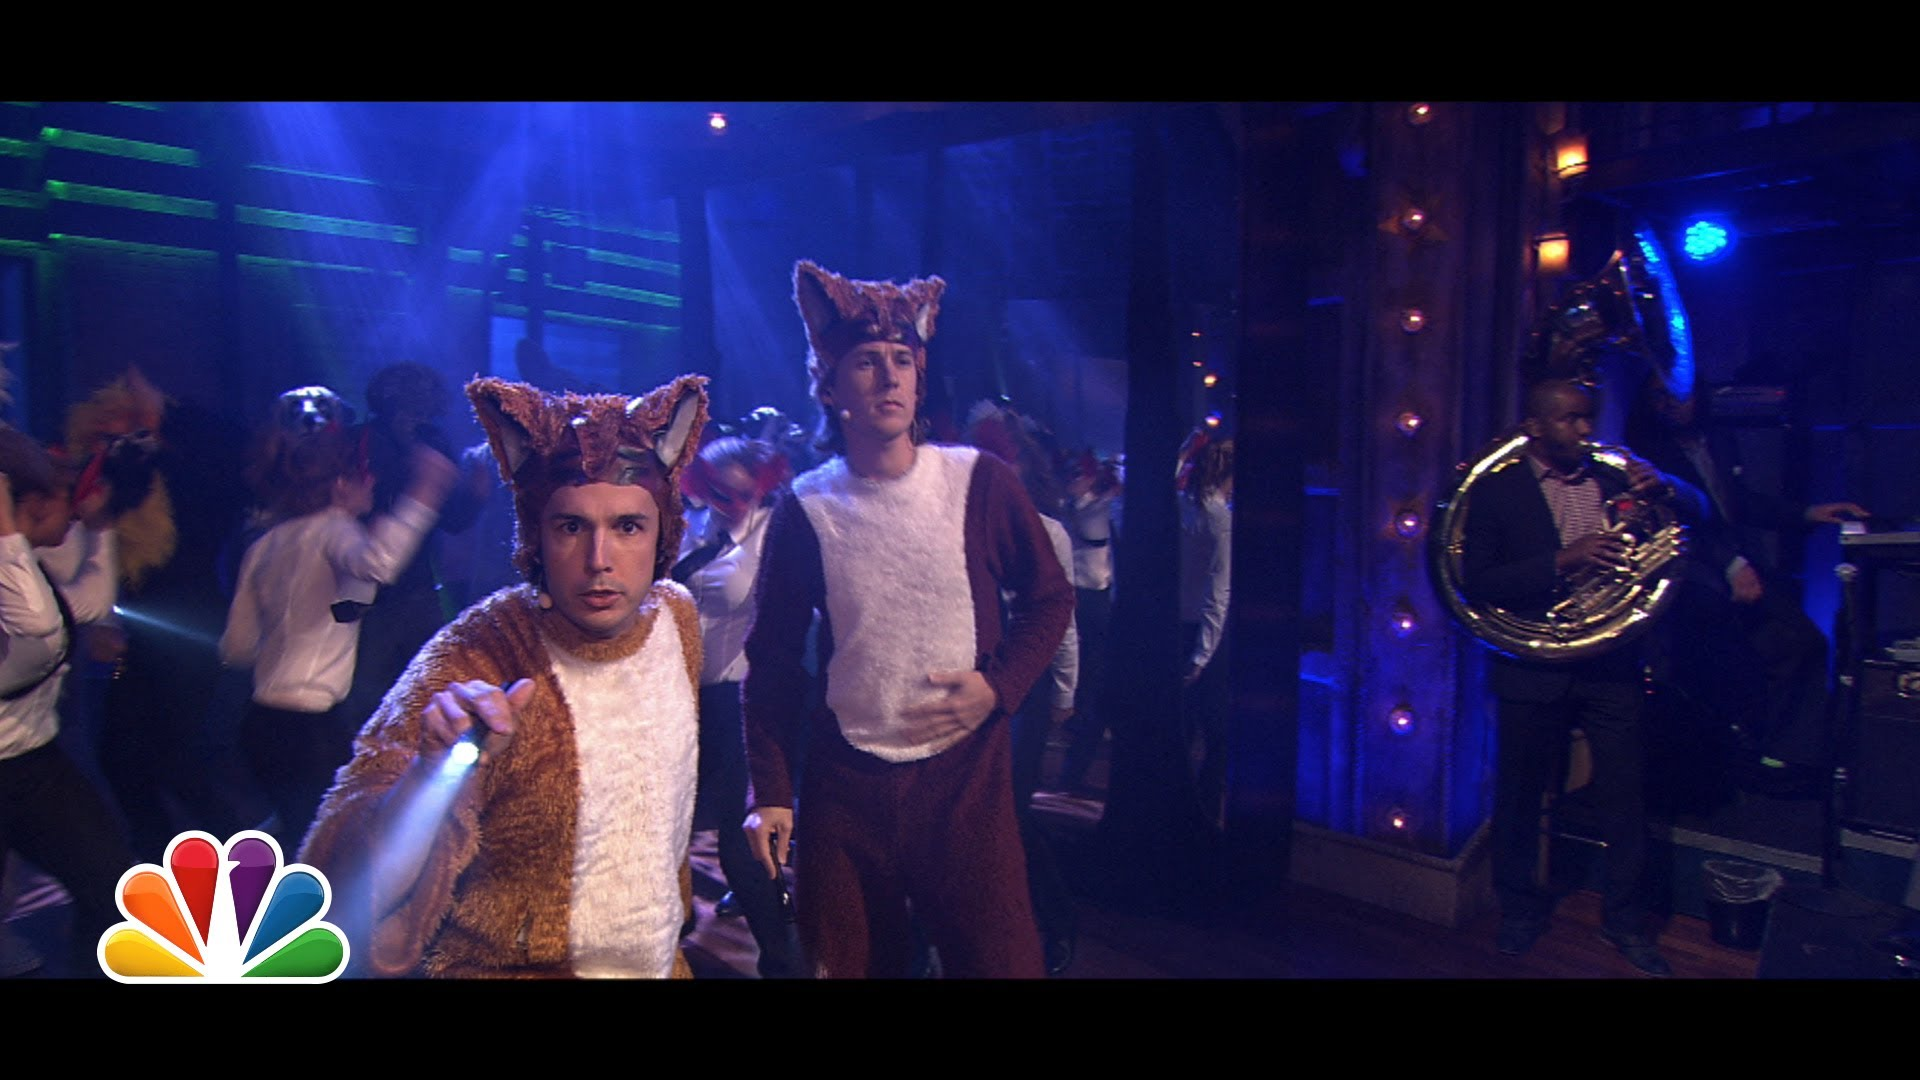 Ylvis Performs 'The Fox' Live With Jimmy Fallon & The Roots